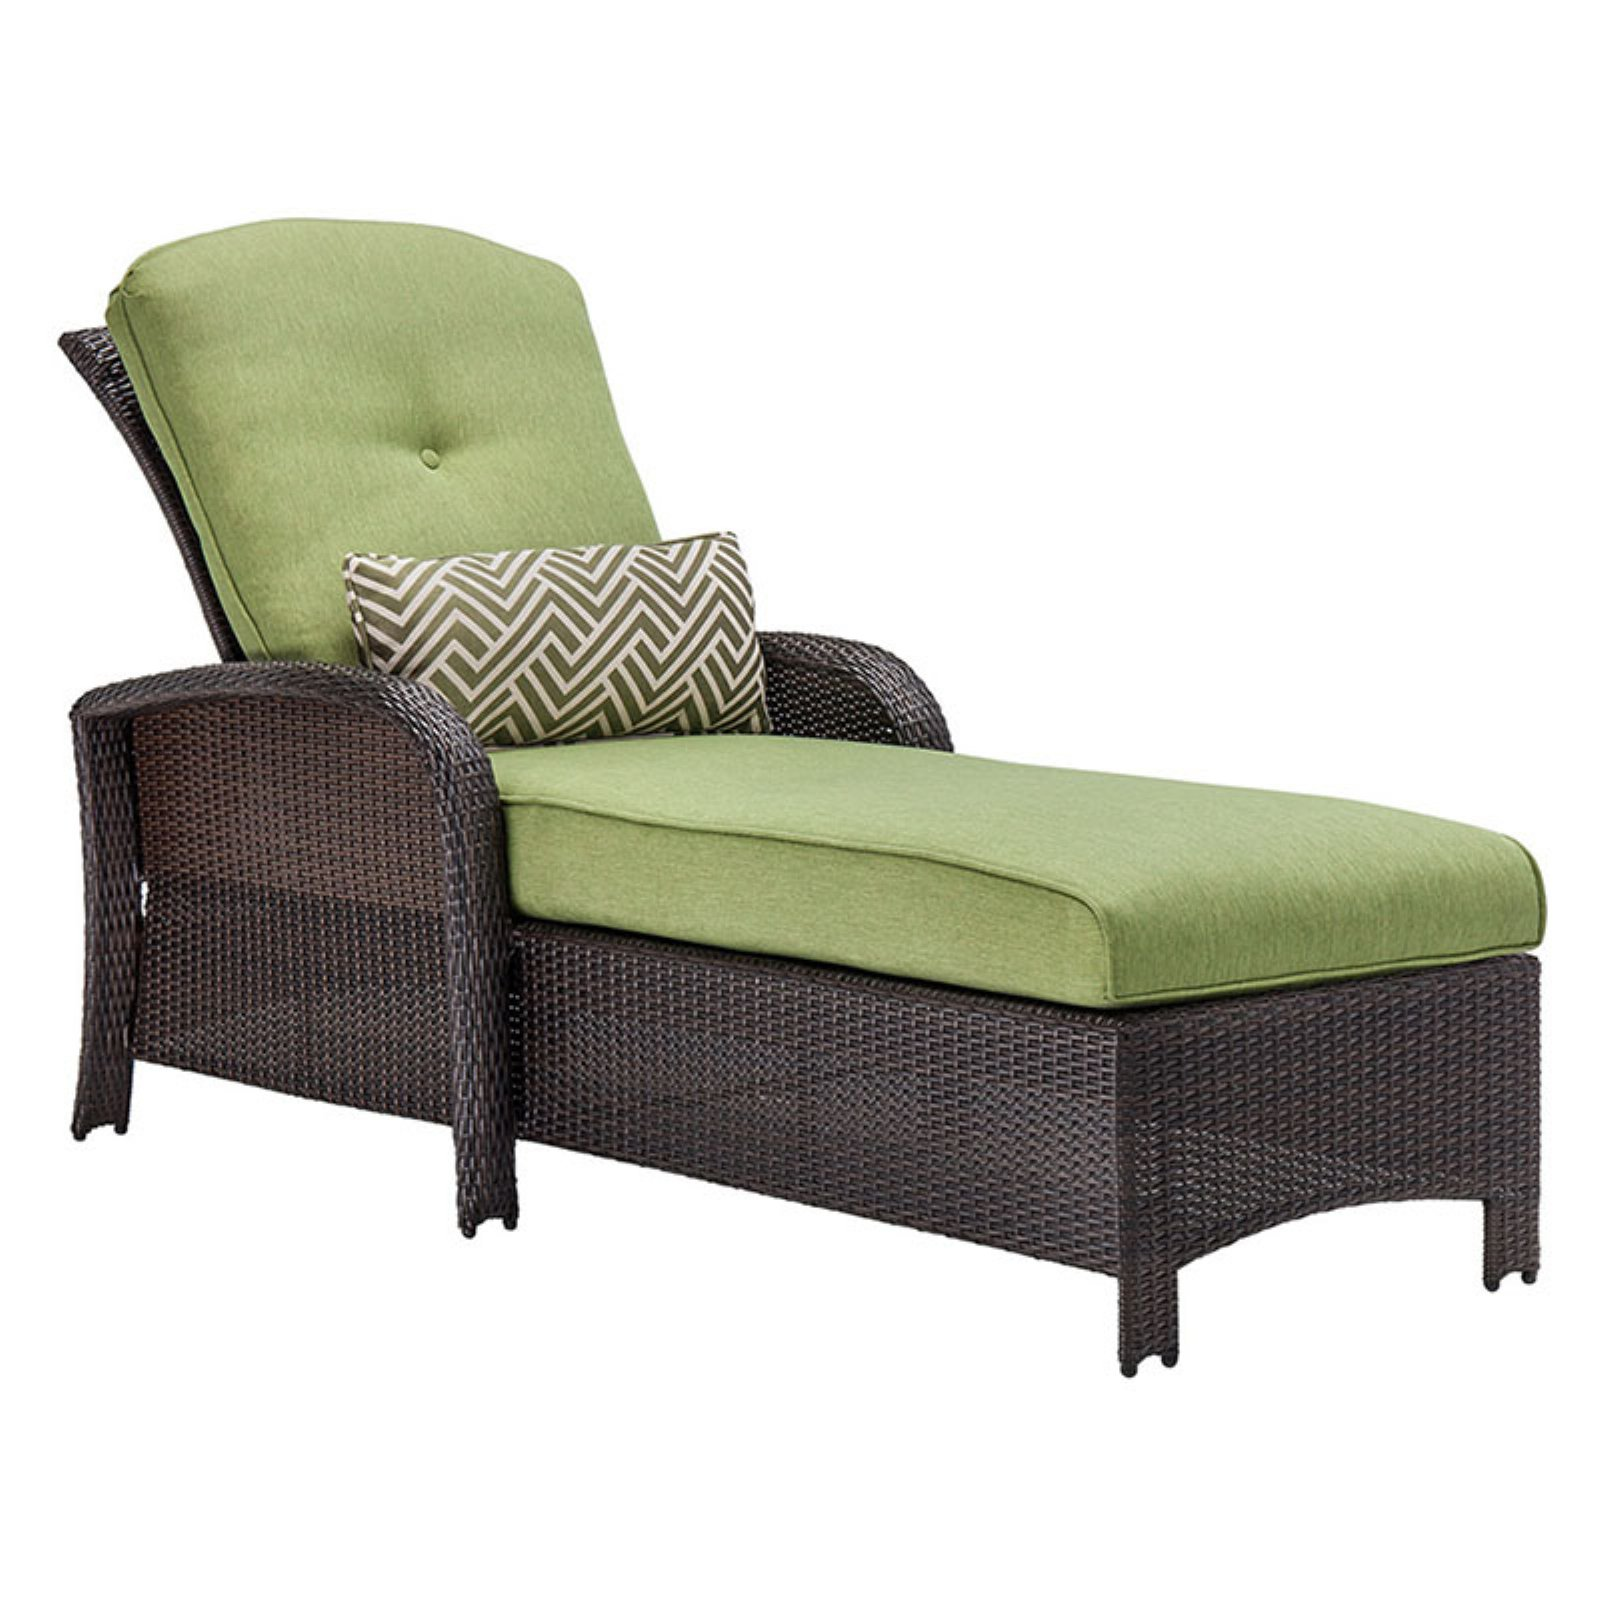 Hanover Strathmere Outdoor Luxury Wicker Chaise Lounge Cilantro Green STRATHCHS